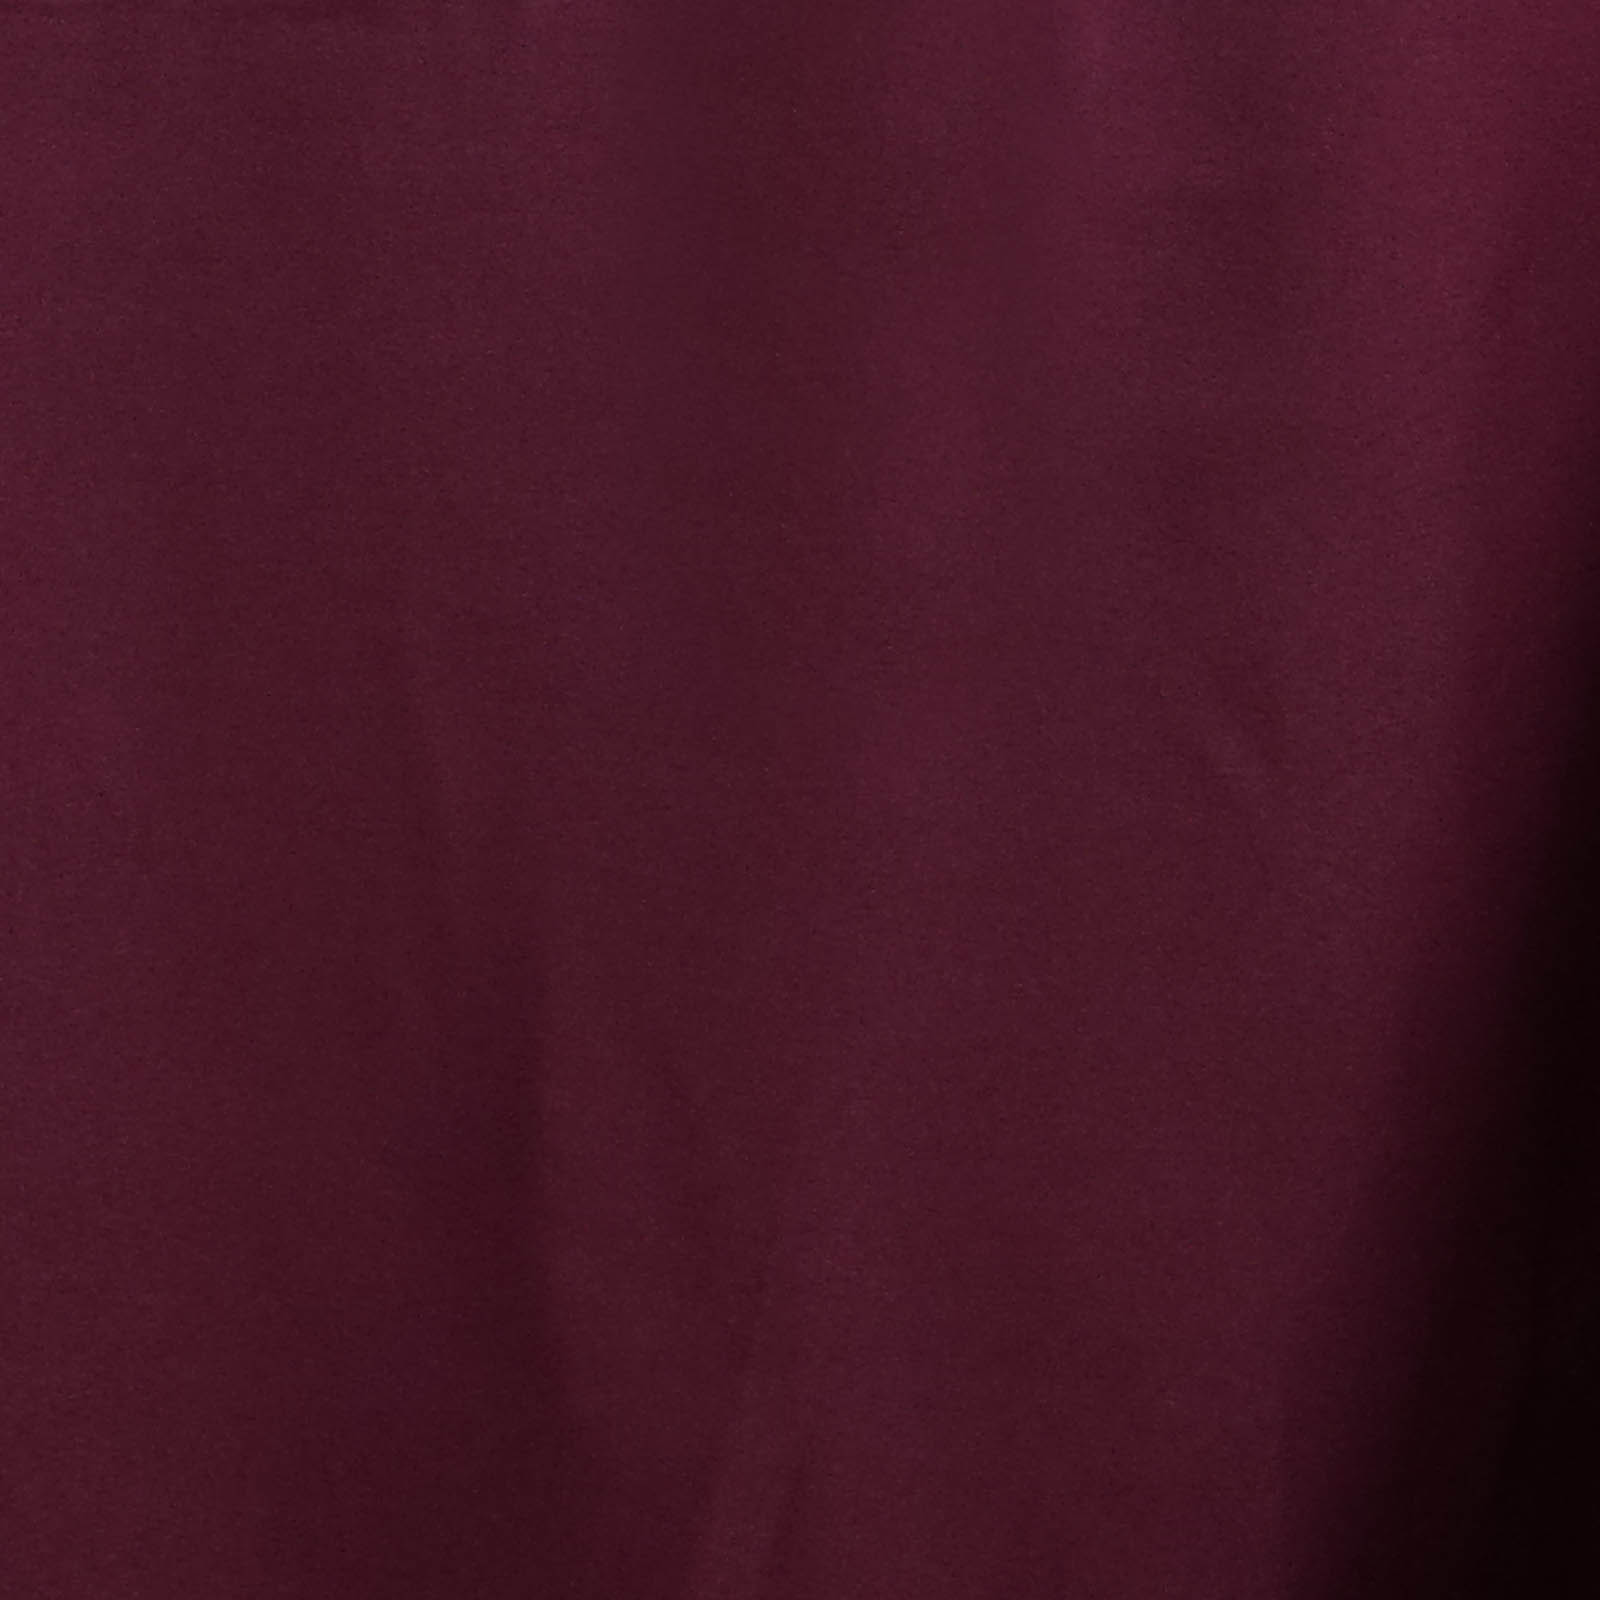 90x156-034-Polyester-Rectangle-Tablecloths-For-Wedding-Party-Banquet-Events thumbnail 8